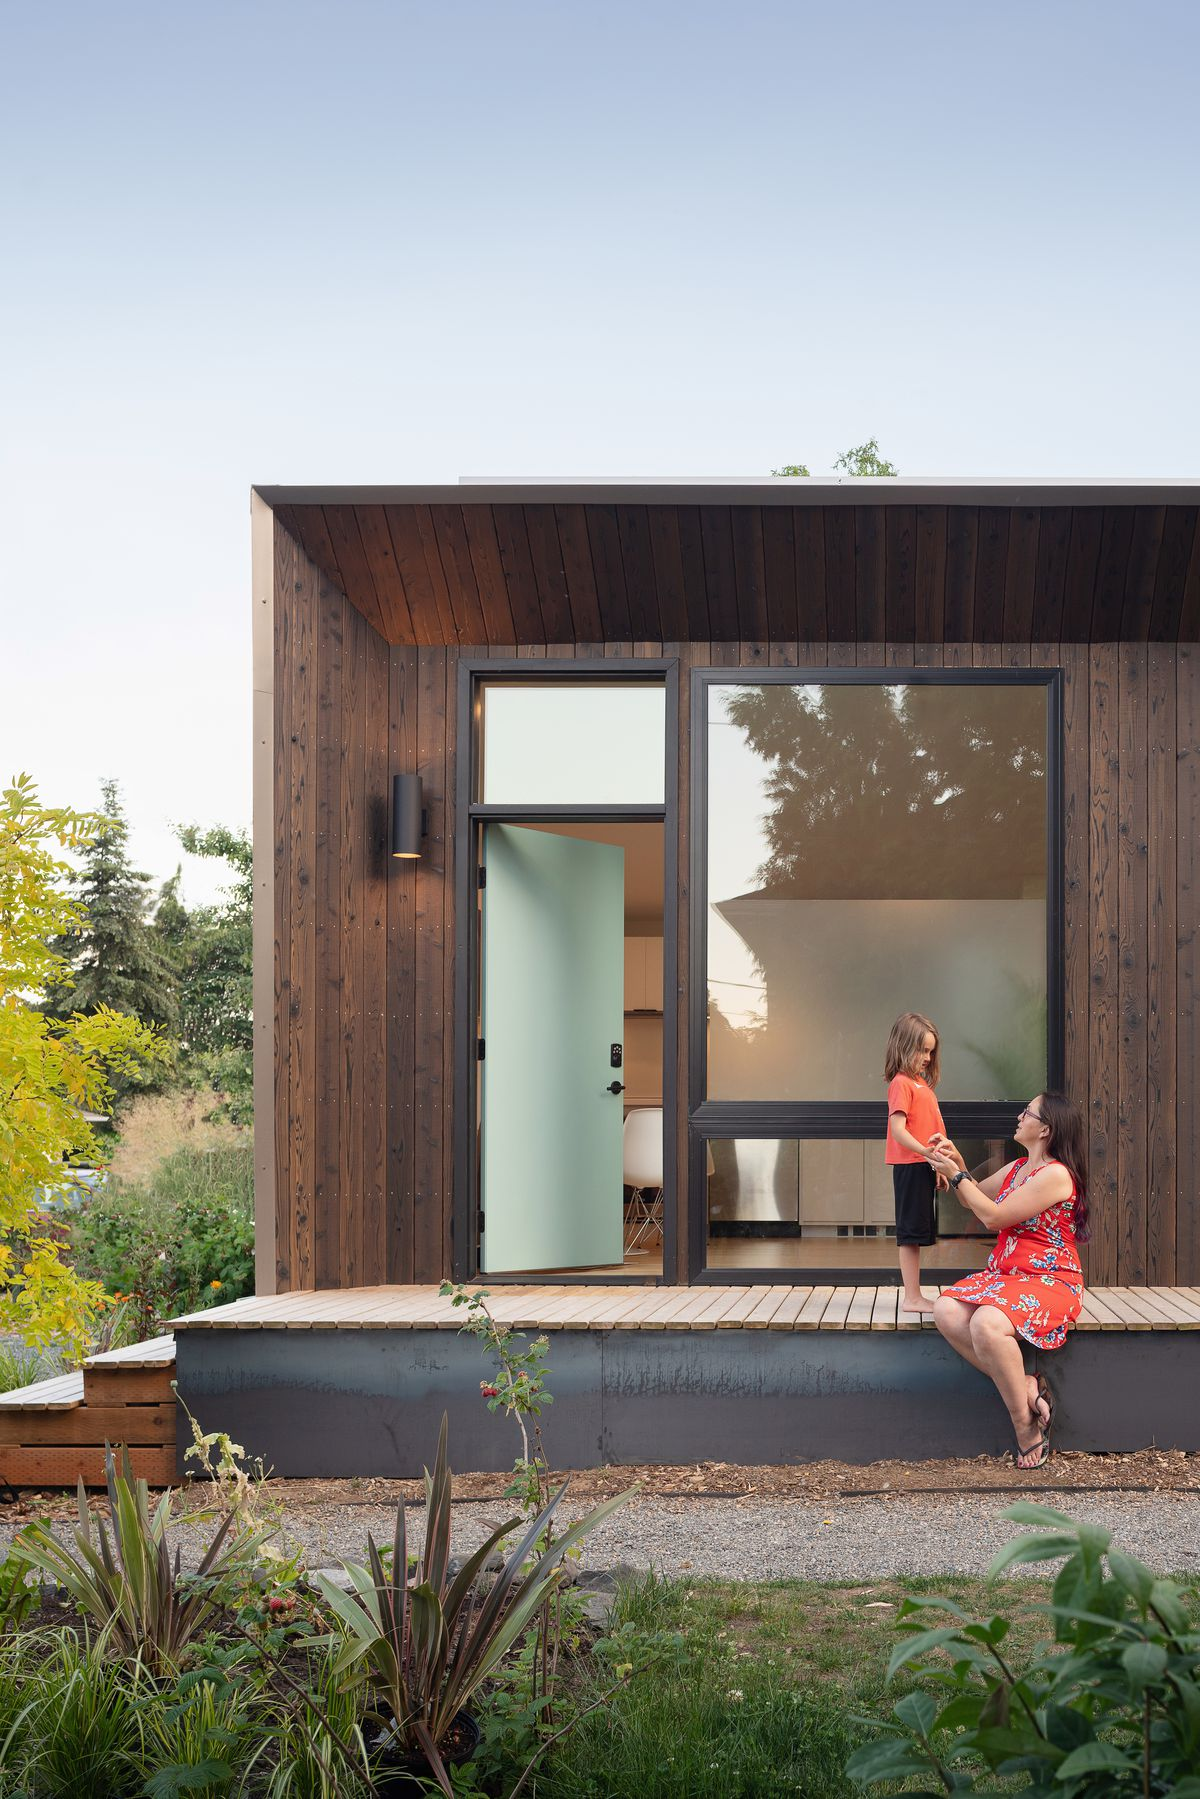 A woman and child interact on the front deck of a small, modern house.